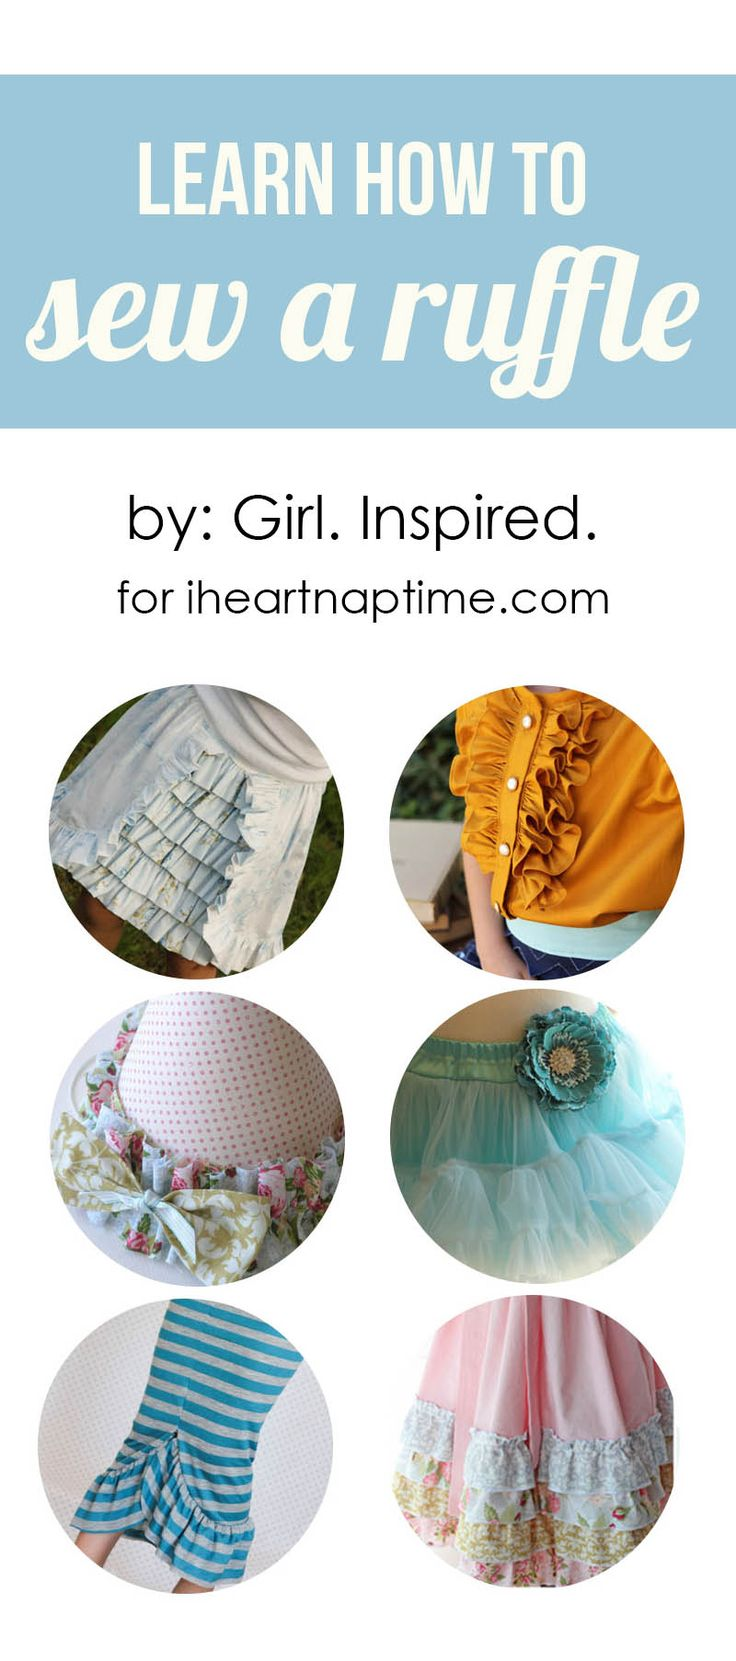 Learn how to sew a ruffle on iheartnaptime.com #sewing #tips